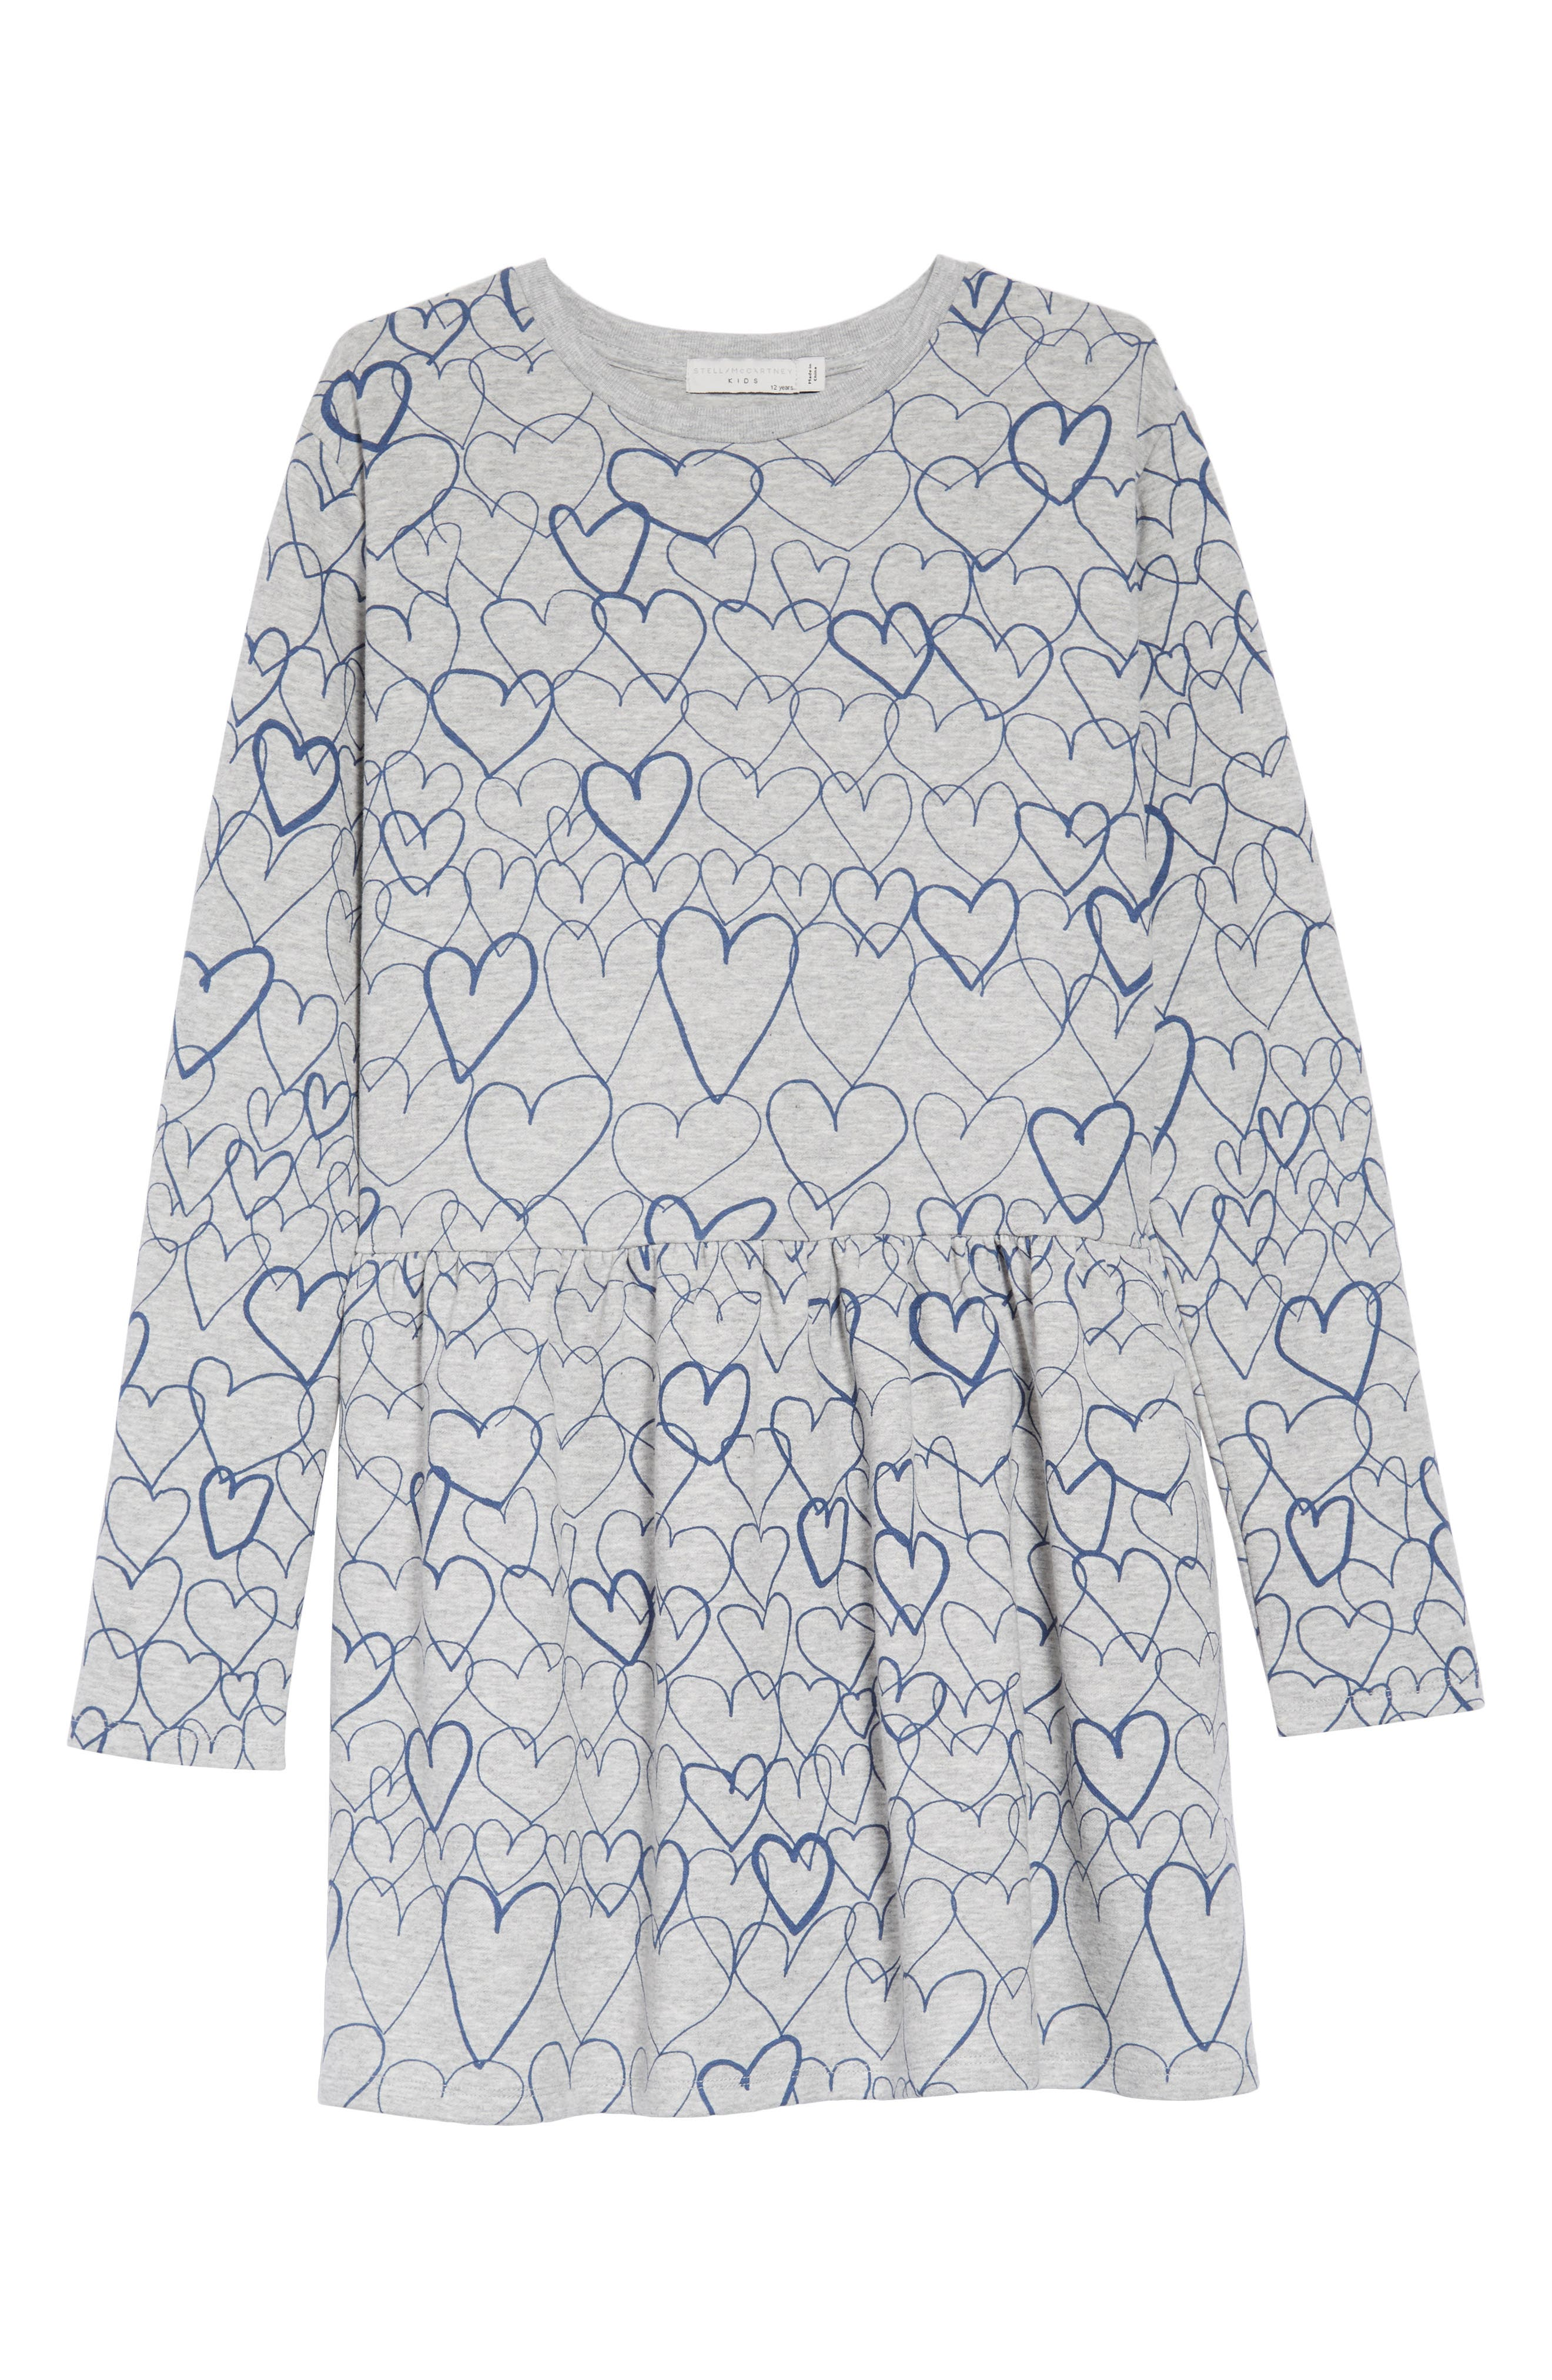 Marion Heart Print Dress,                             Main thumbnail 1, color,                             GREY BLUE